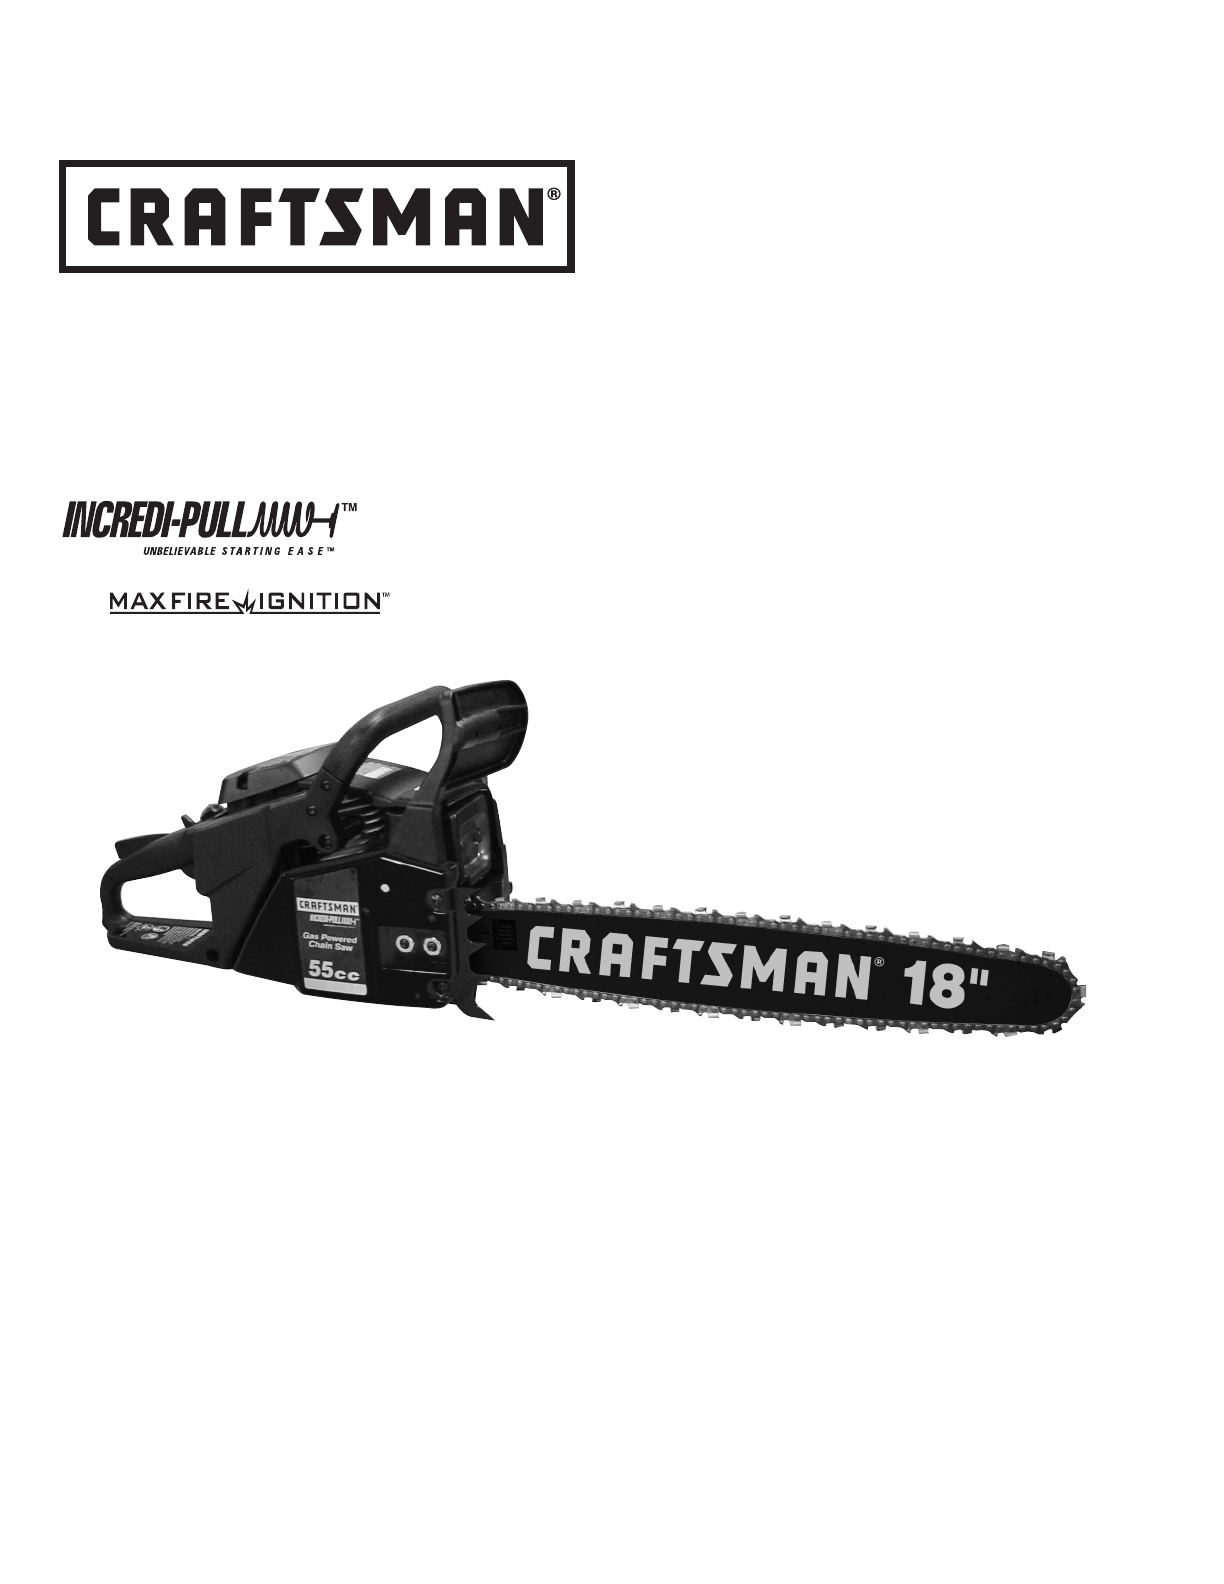 craftsman chainsaw 316350840 user guide manualsonline com rh lawnandgarden manualsonline com craftsman electric chainsaw model 358 manual Craftsman Chainsaw Carburetor Diagram